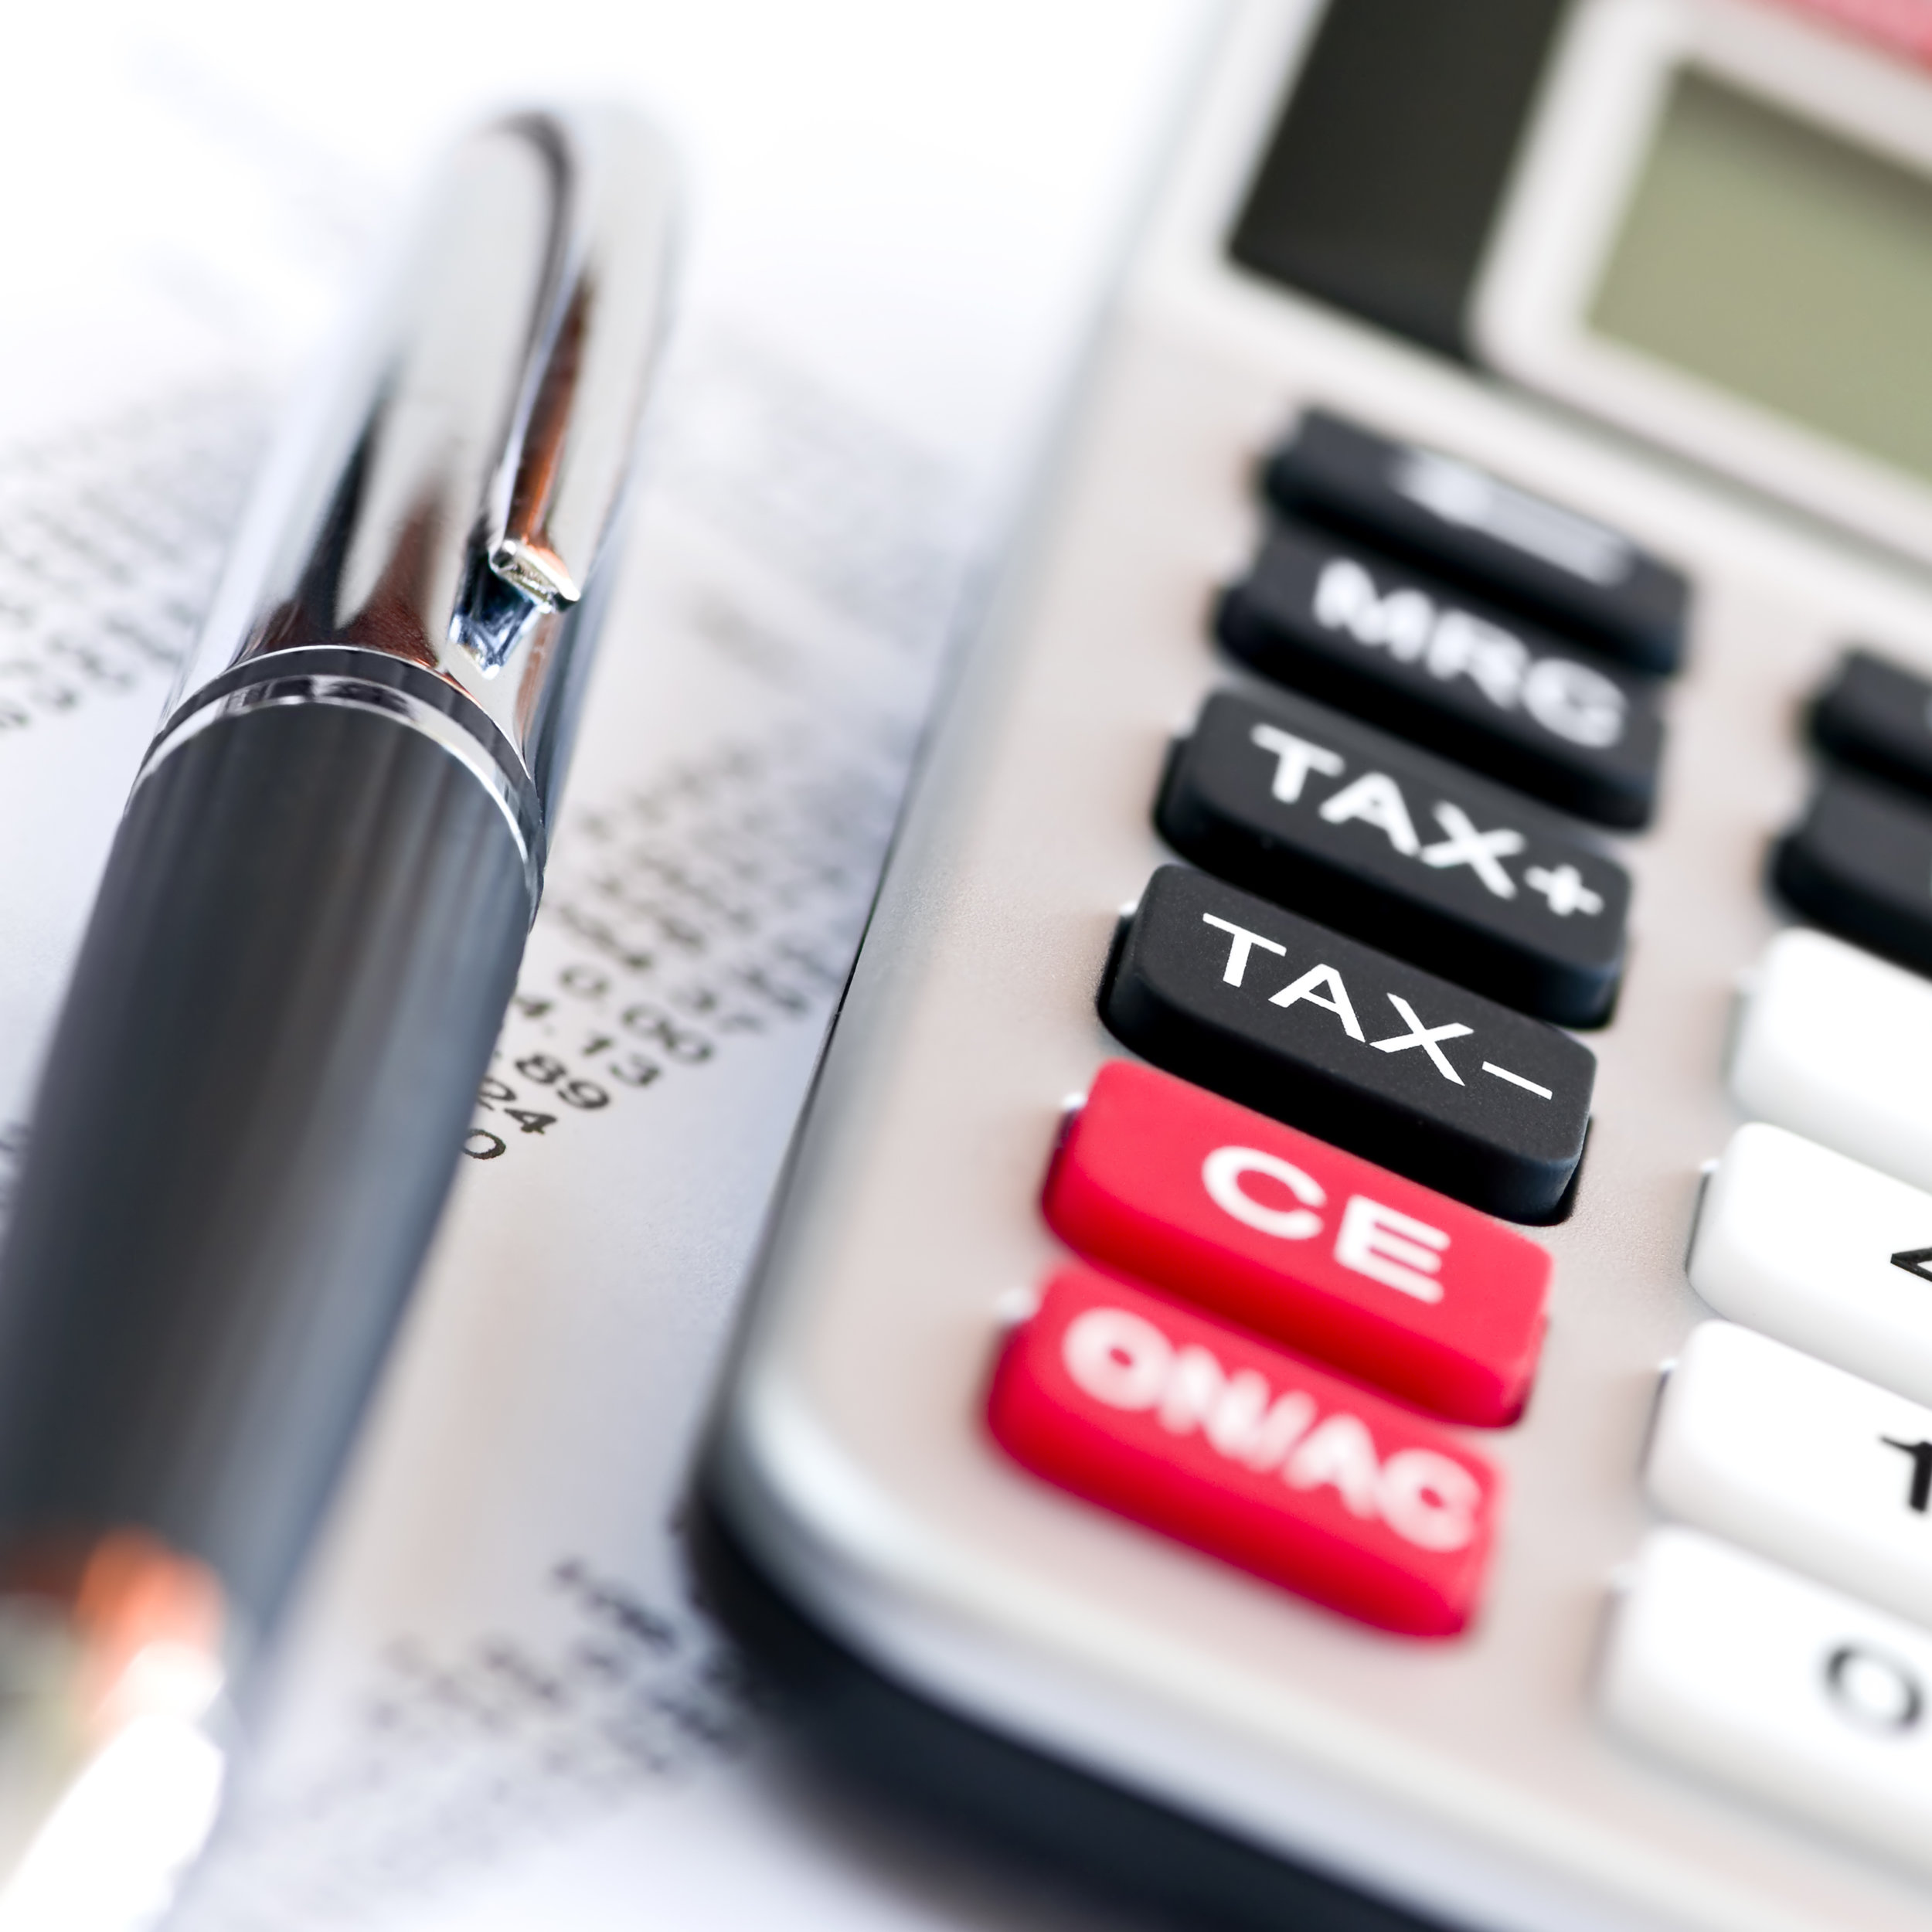 E-Commerce Purchase Taxation Looking Less Likely